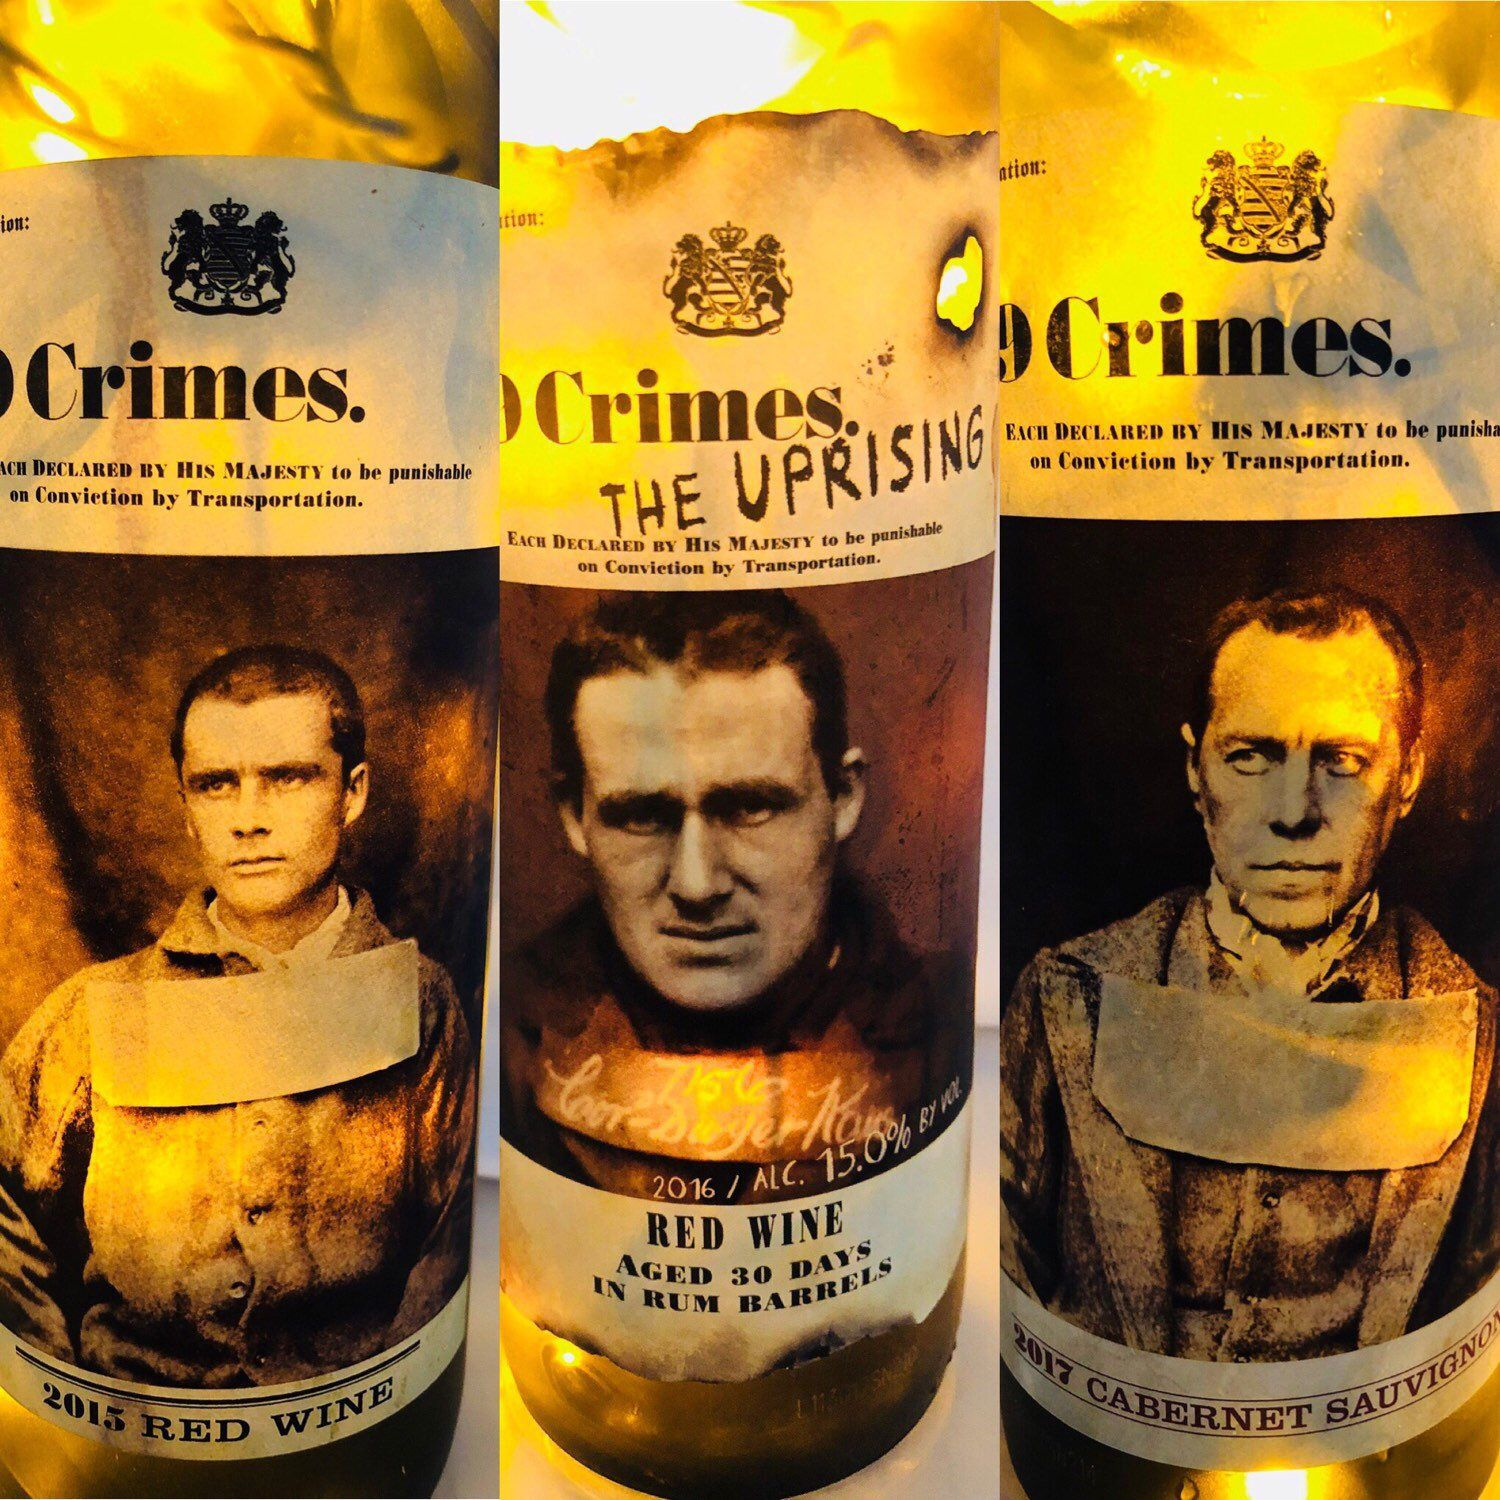 The prisoners are loose! Each 19 Crimes wine bottle lamp